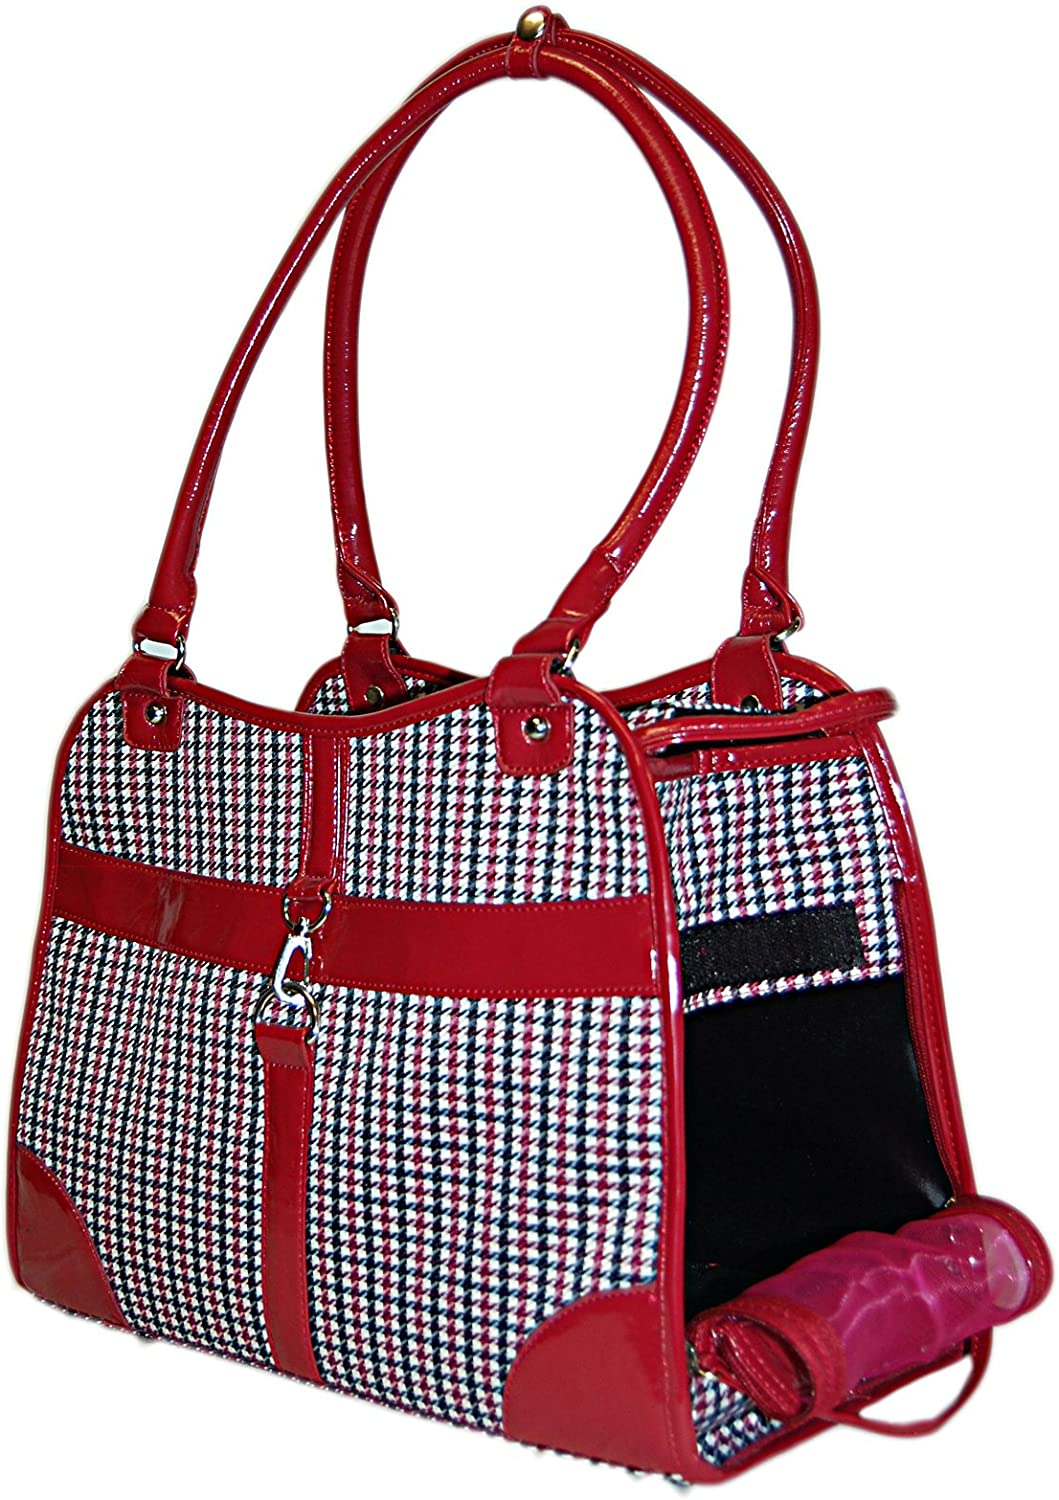 Anima Houndstooth Purse Carrier, 13.5Inch by 6.5Inch by 10.5Inch, Red by Anima International Corp.